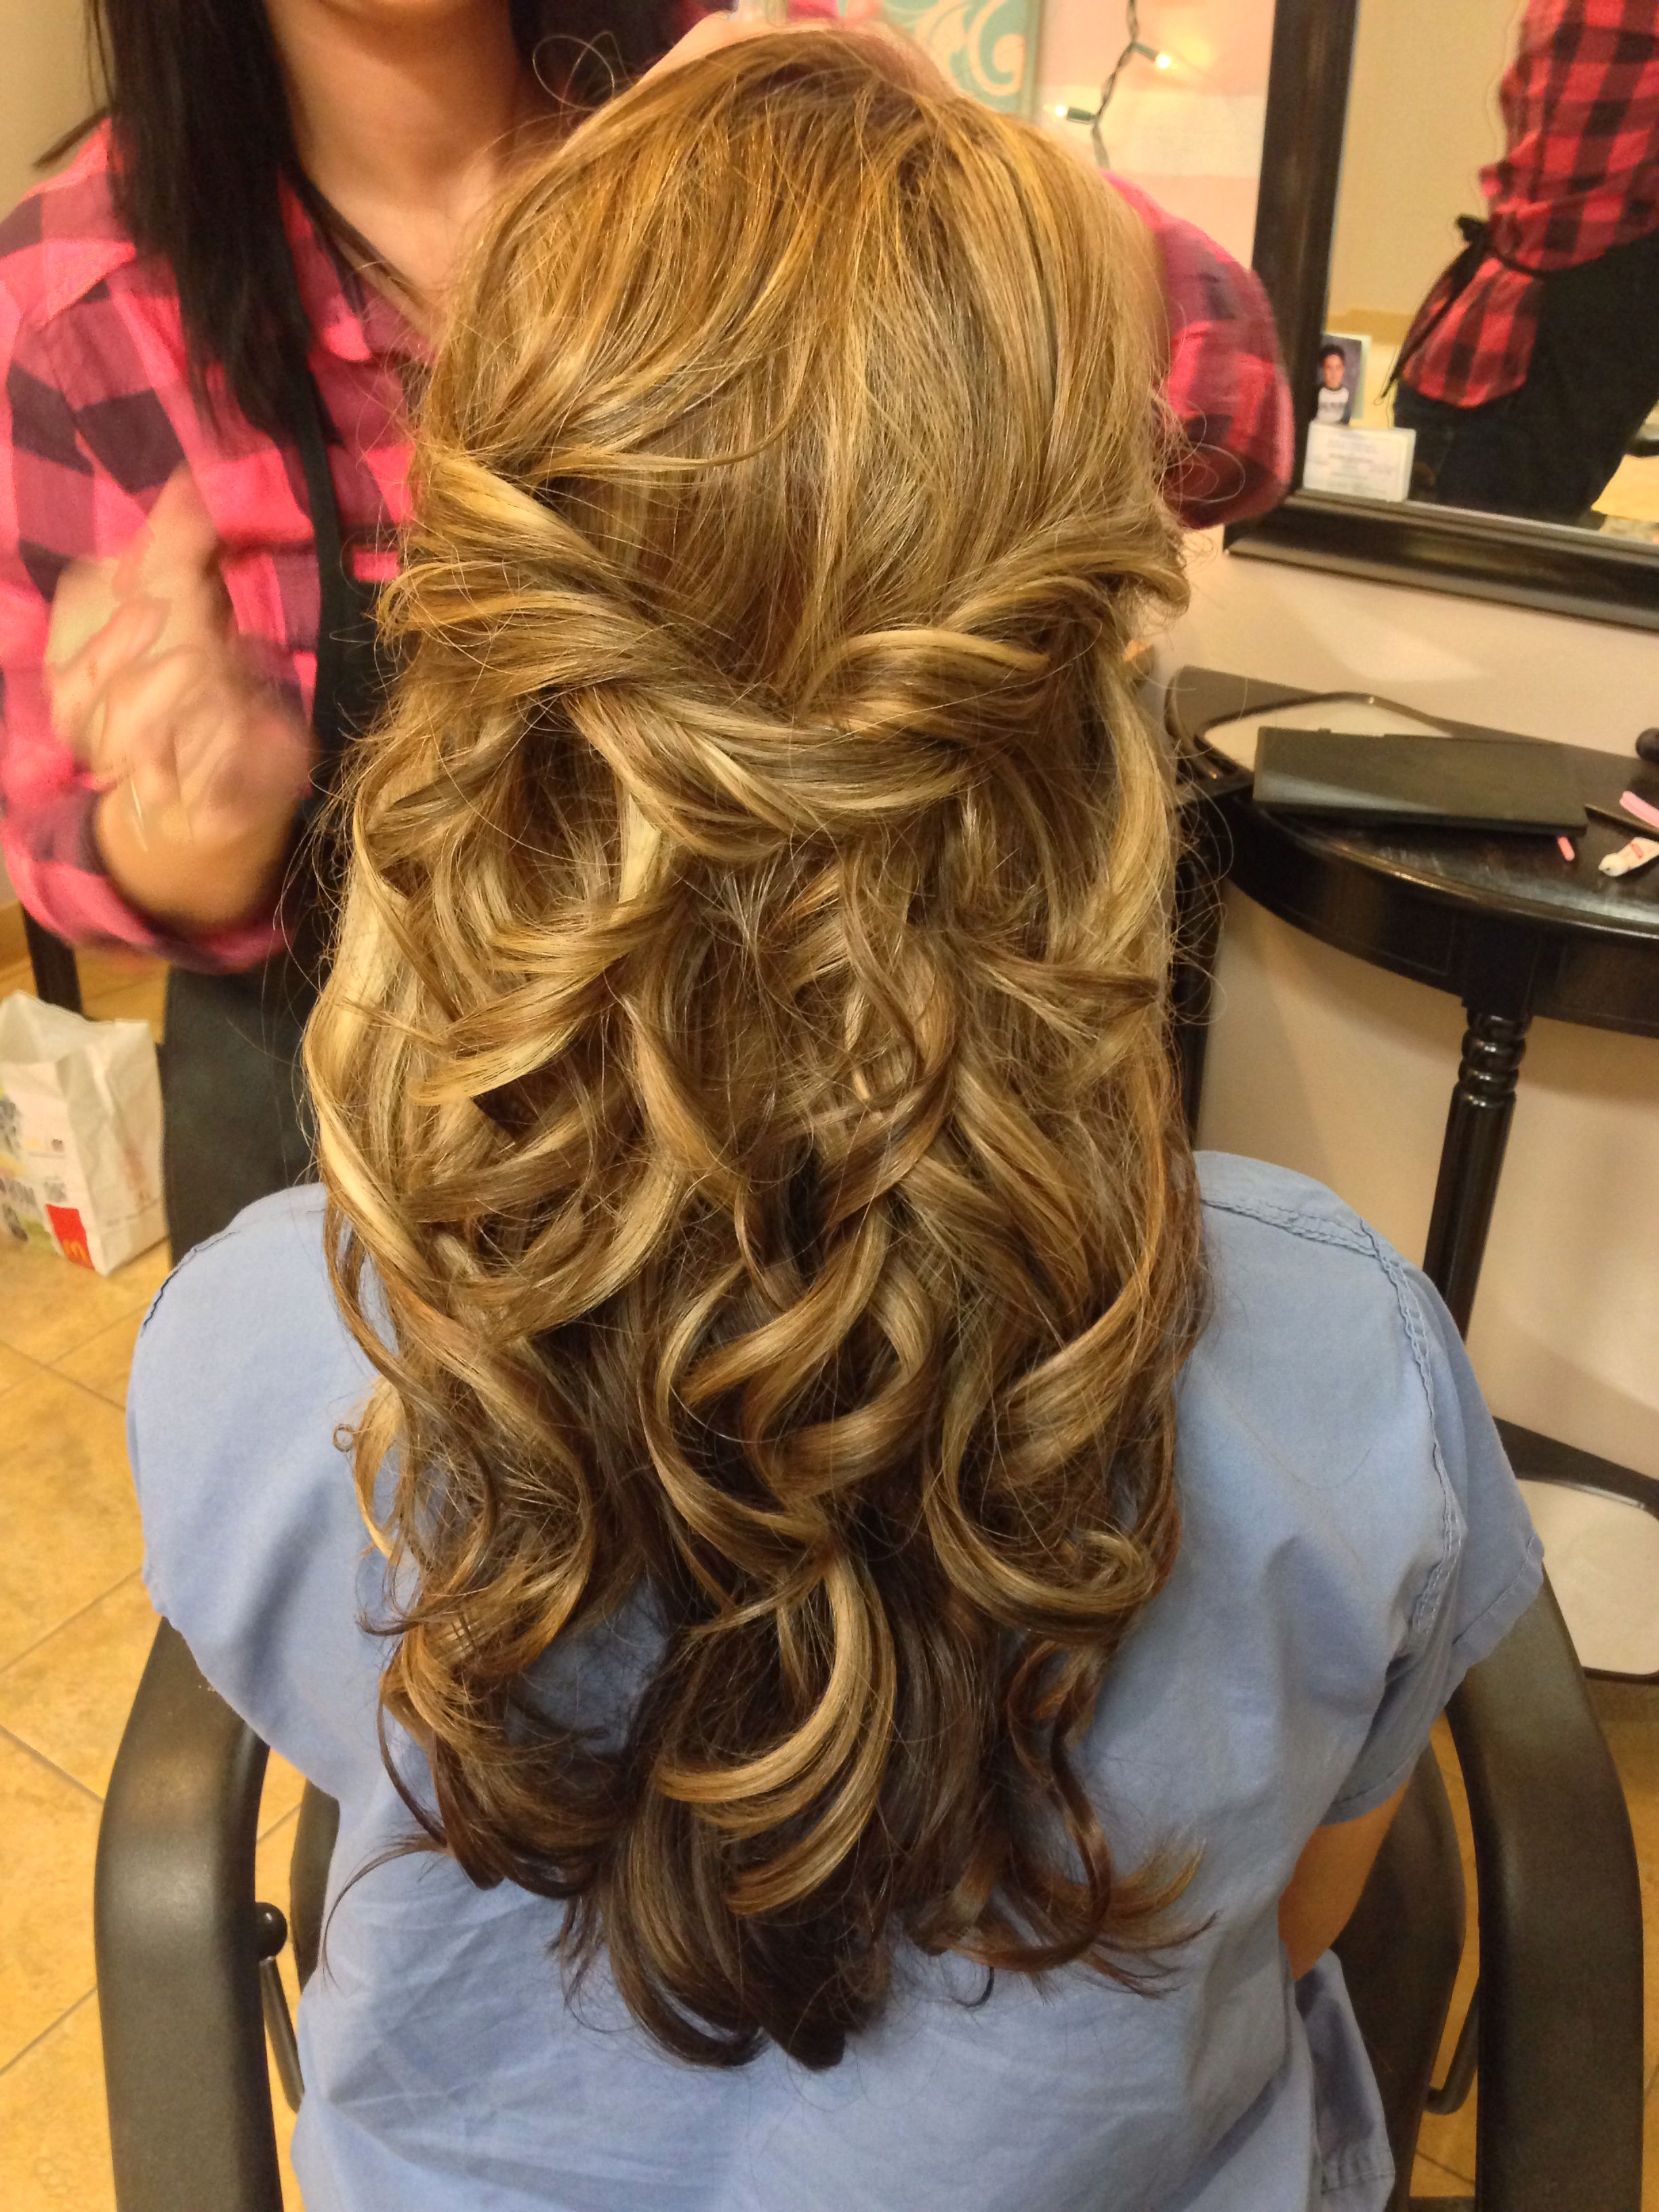 Long hair half up half down style (With images) | Long ...